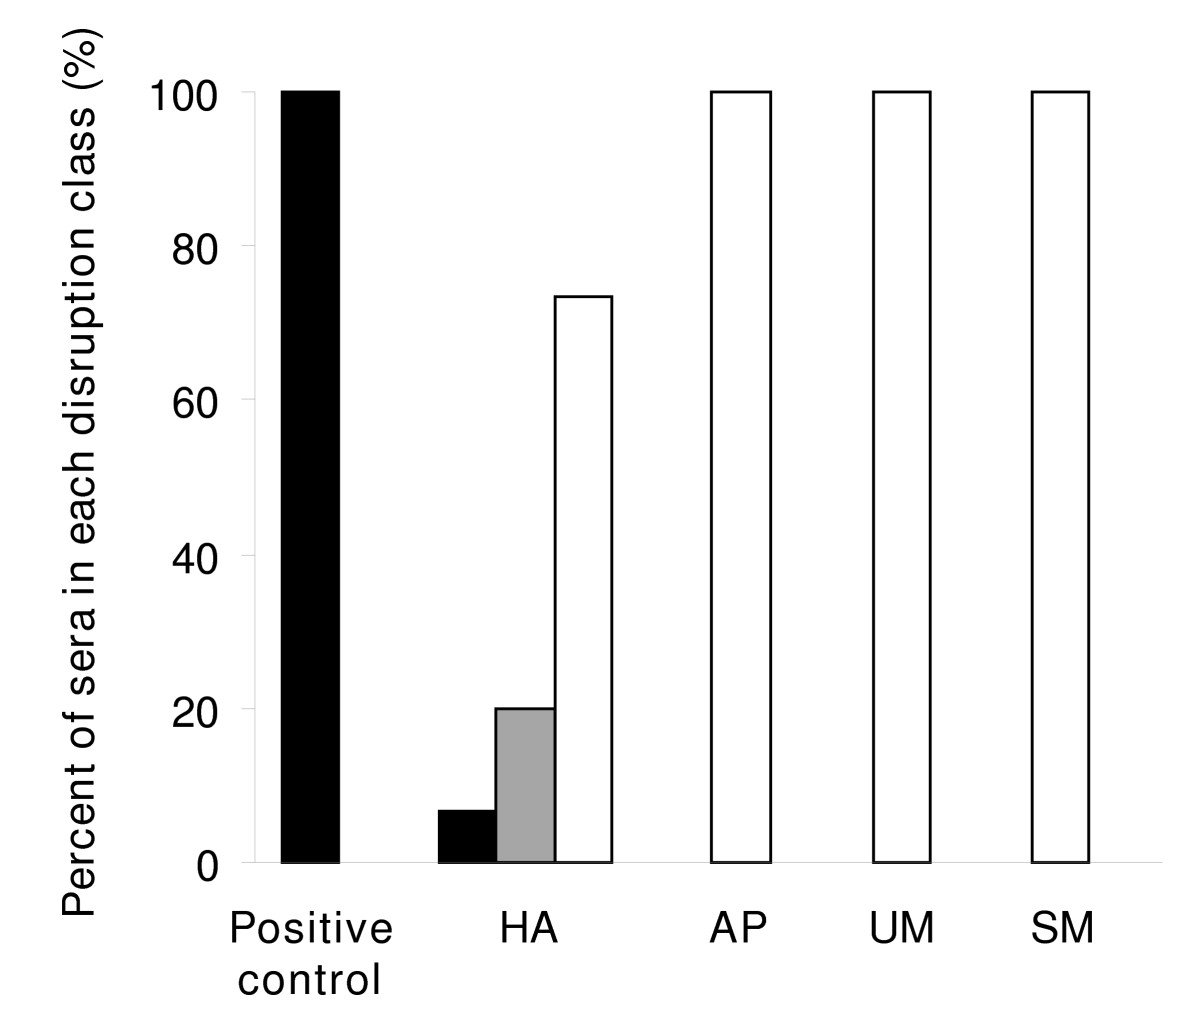 http://static-content.springer.com/image/art%3A10.1186%2F1475-2875-9-267/MediaObjects/12936_2010_Article_1349_Fig2_HTML.jpg